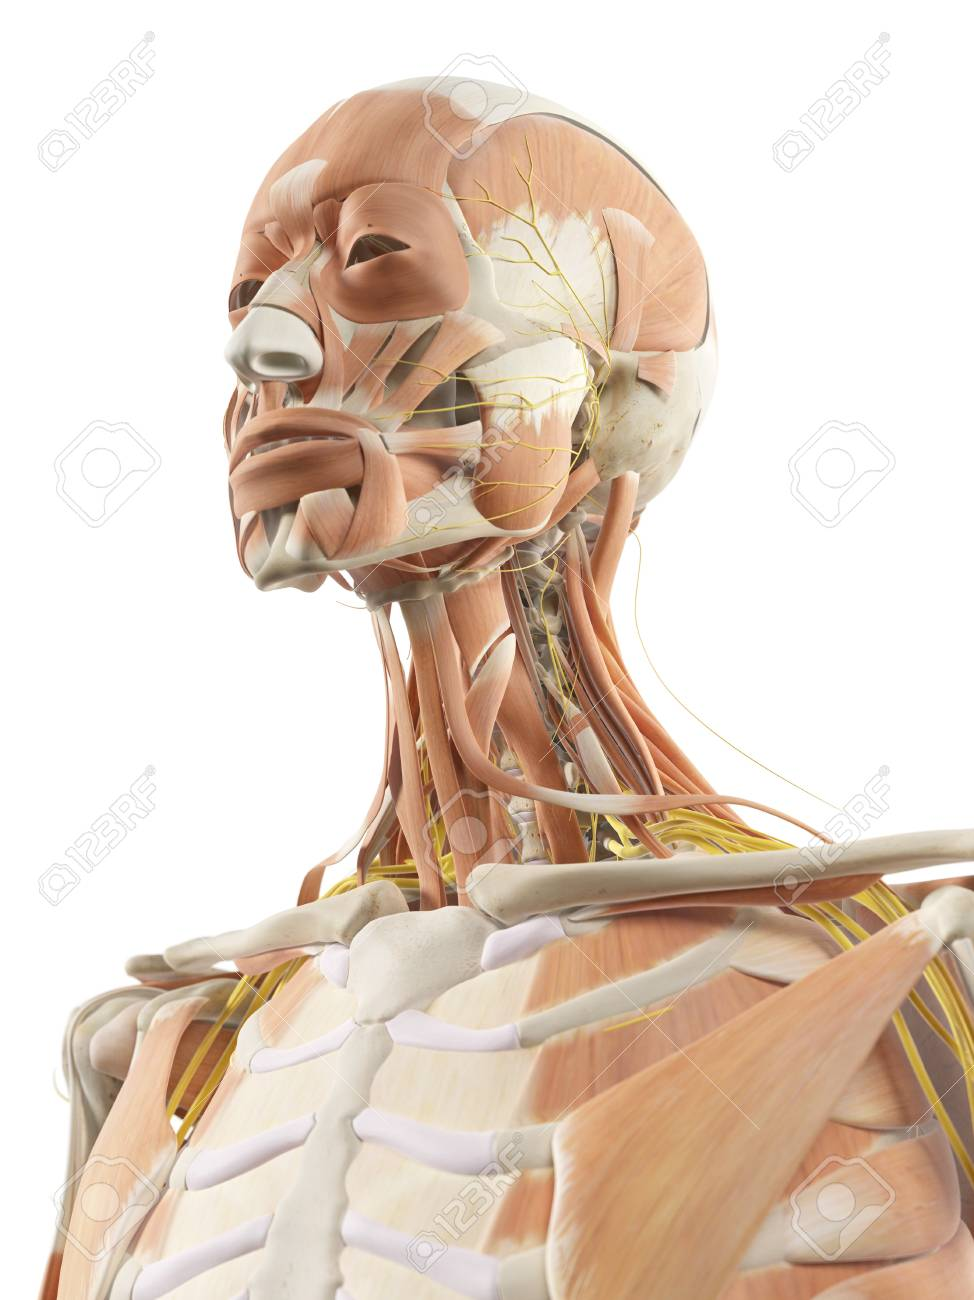 Neck Muscles And Nerves, Artwork Stock Photo, Picture And Royalty ...